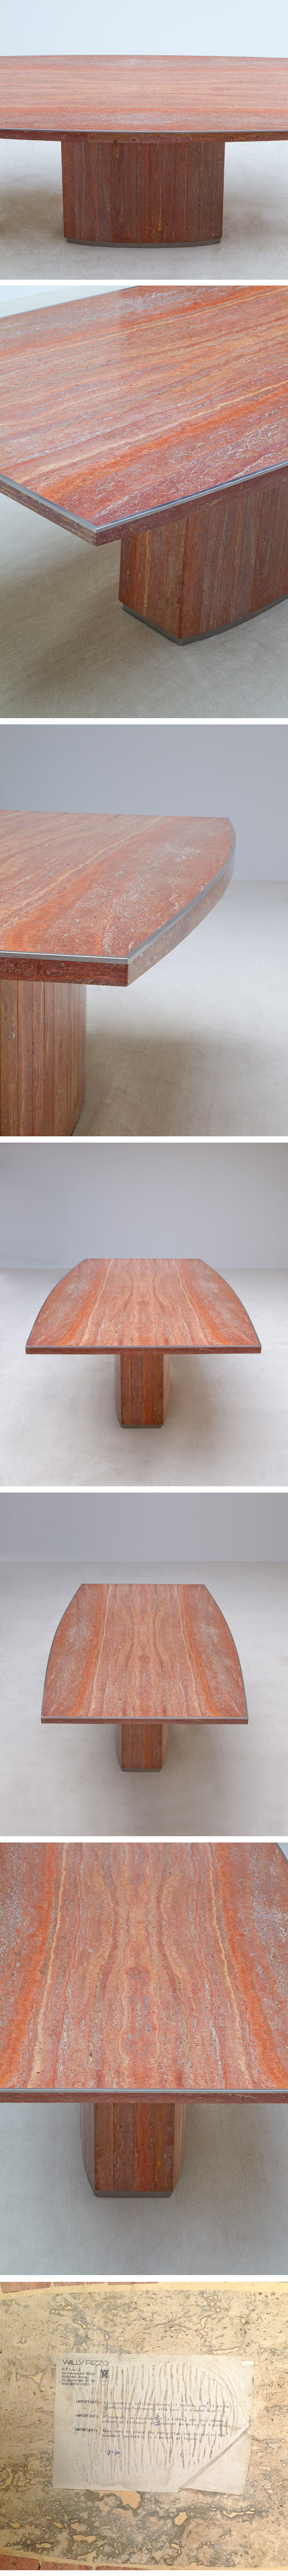 Red, travertin, Willy Rizzo, dining, table, 1970s